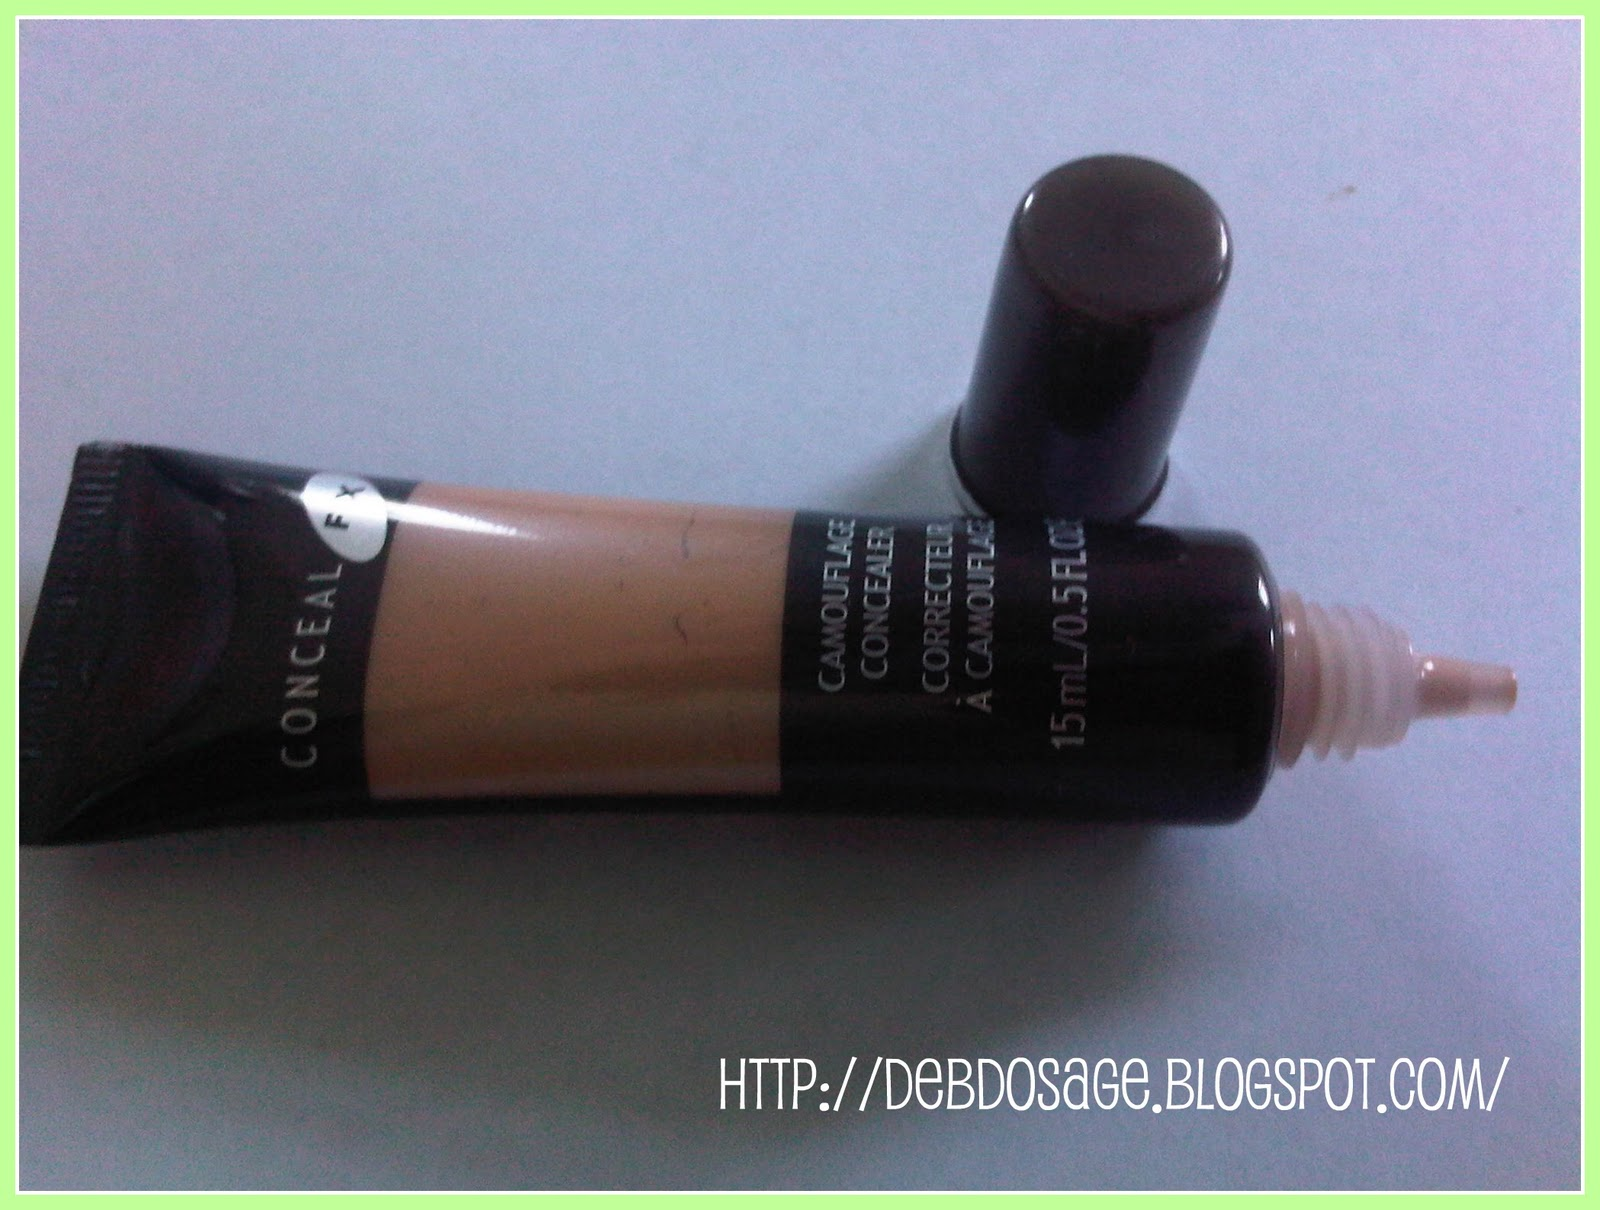 A Blog for your daily Deb Dosage :): Eye love to conceal - REVIEWS